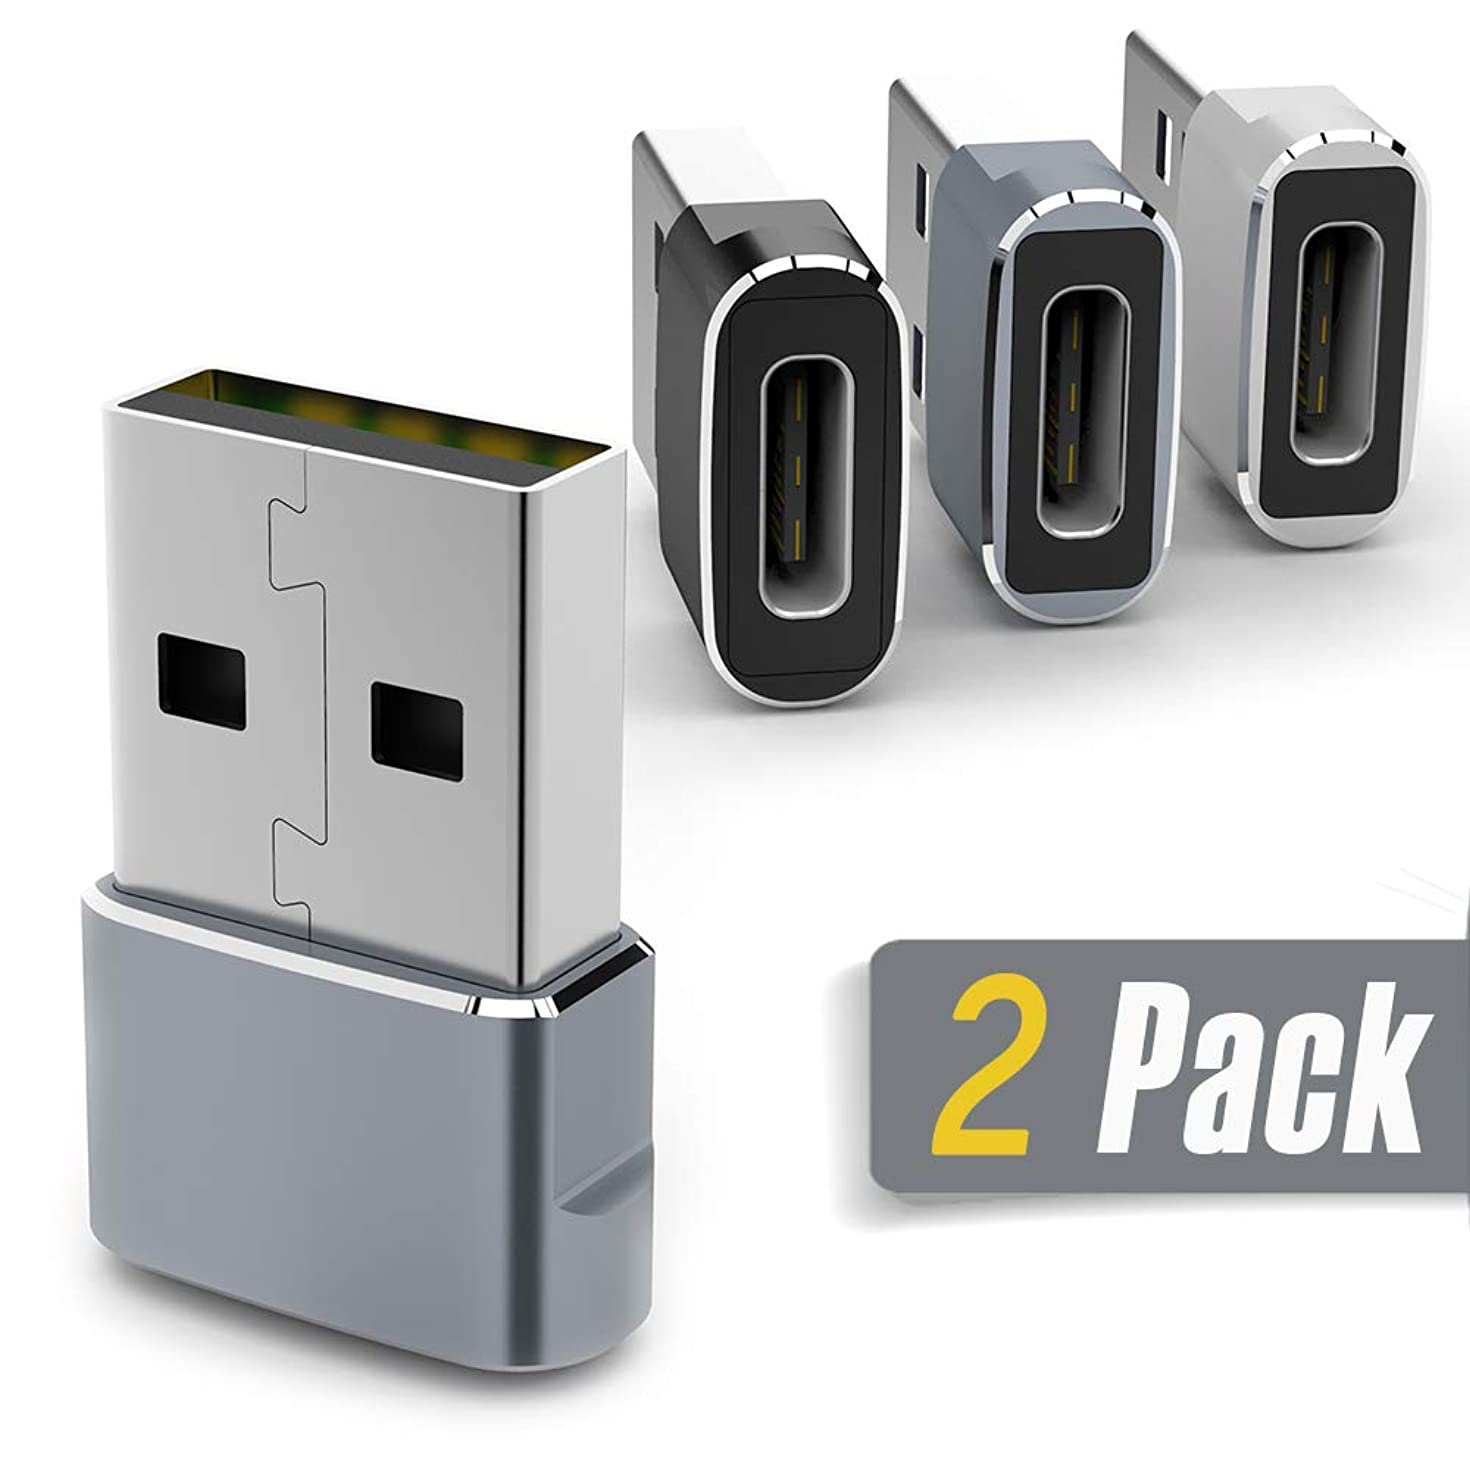 USB C Female to USB Male Adapter, Accerzone 2Pack Type-C to USB A Fast Charging Sync Connector OTG Adapter, Compatible with Laptop, Power Banks, Wall Car Charger with USB A Interface (Grey)